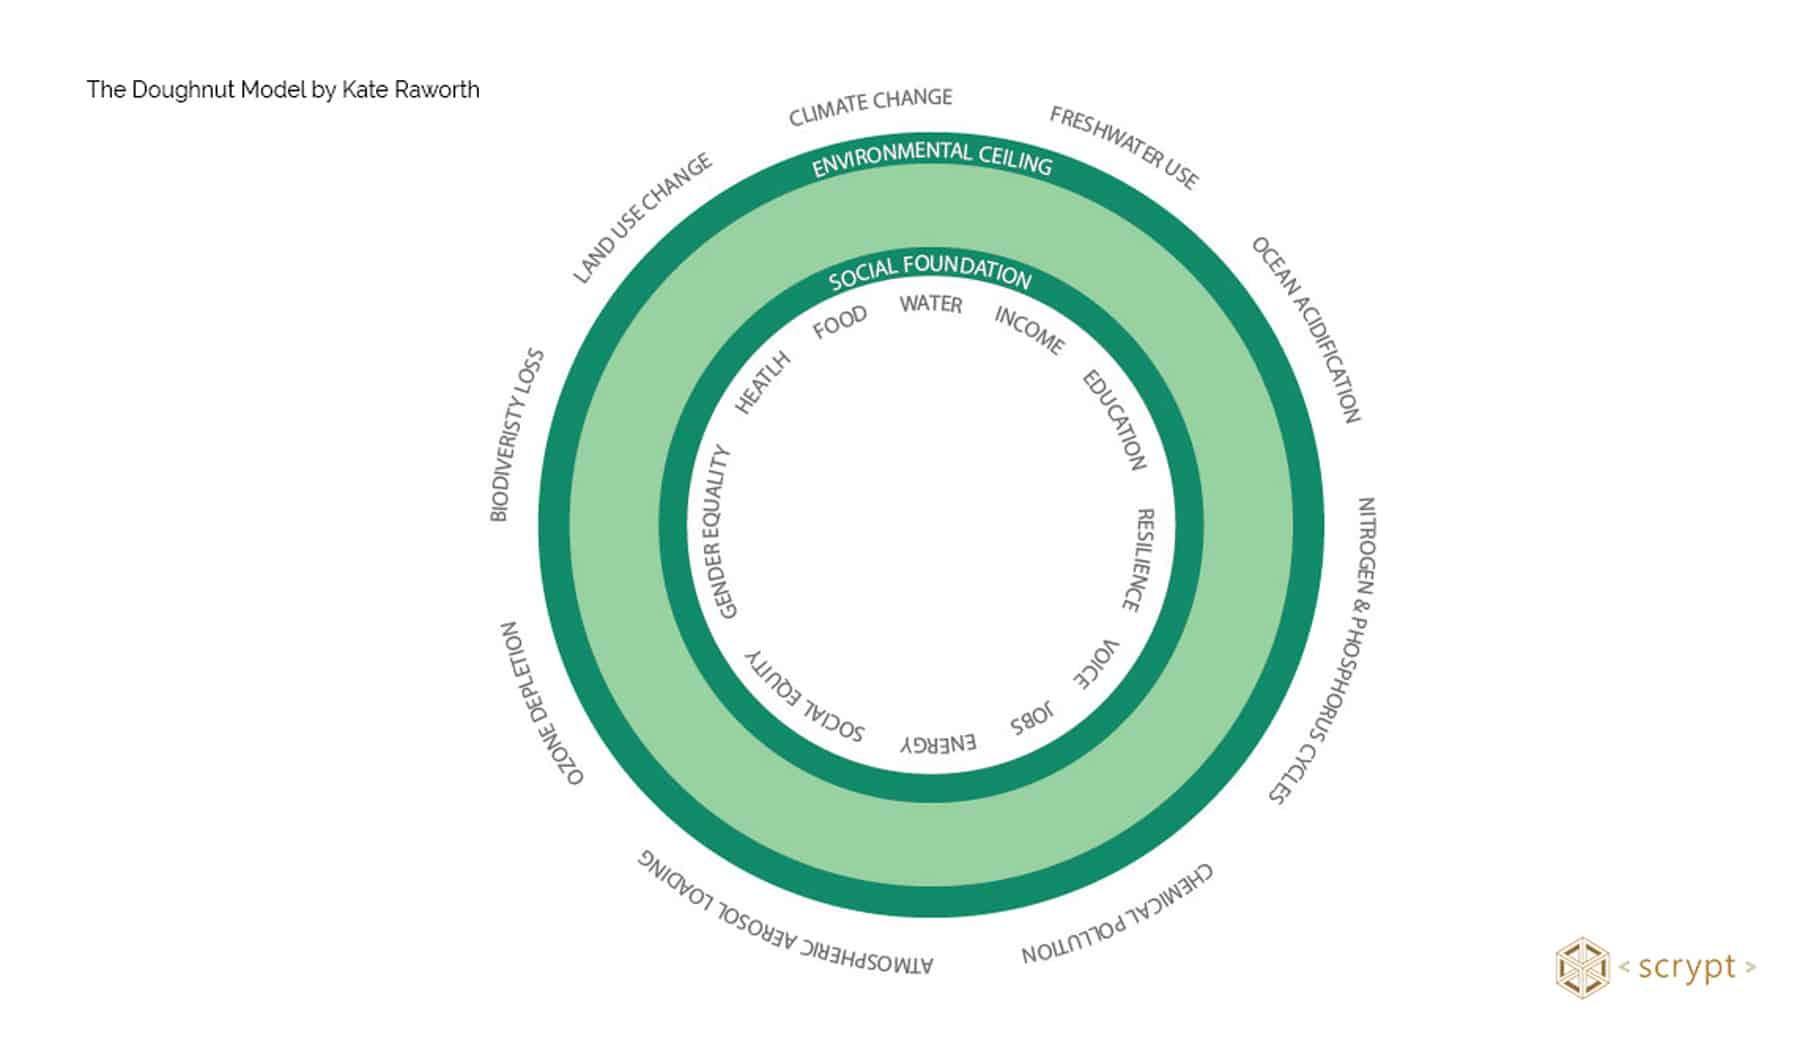 The Doughnut Model by Kate Raworth